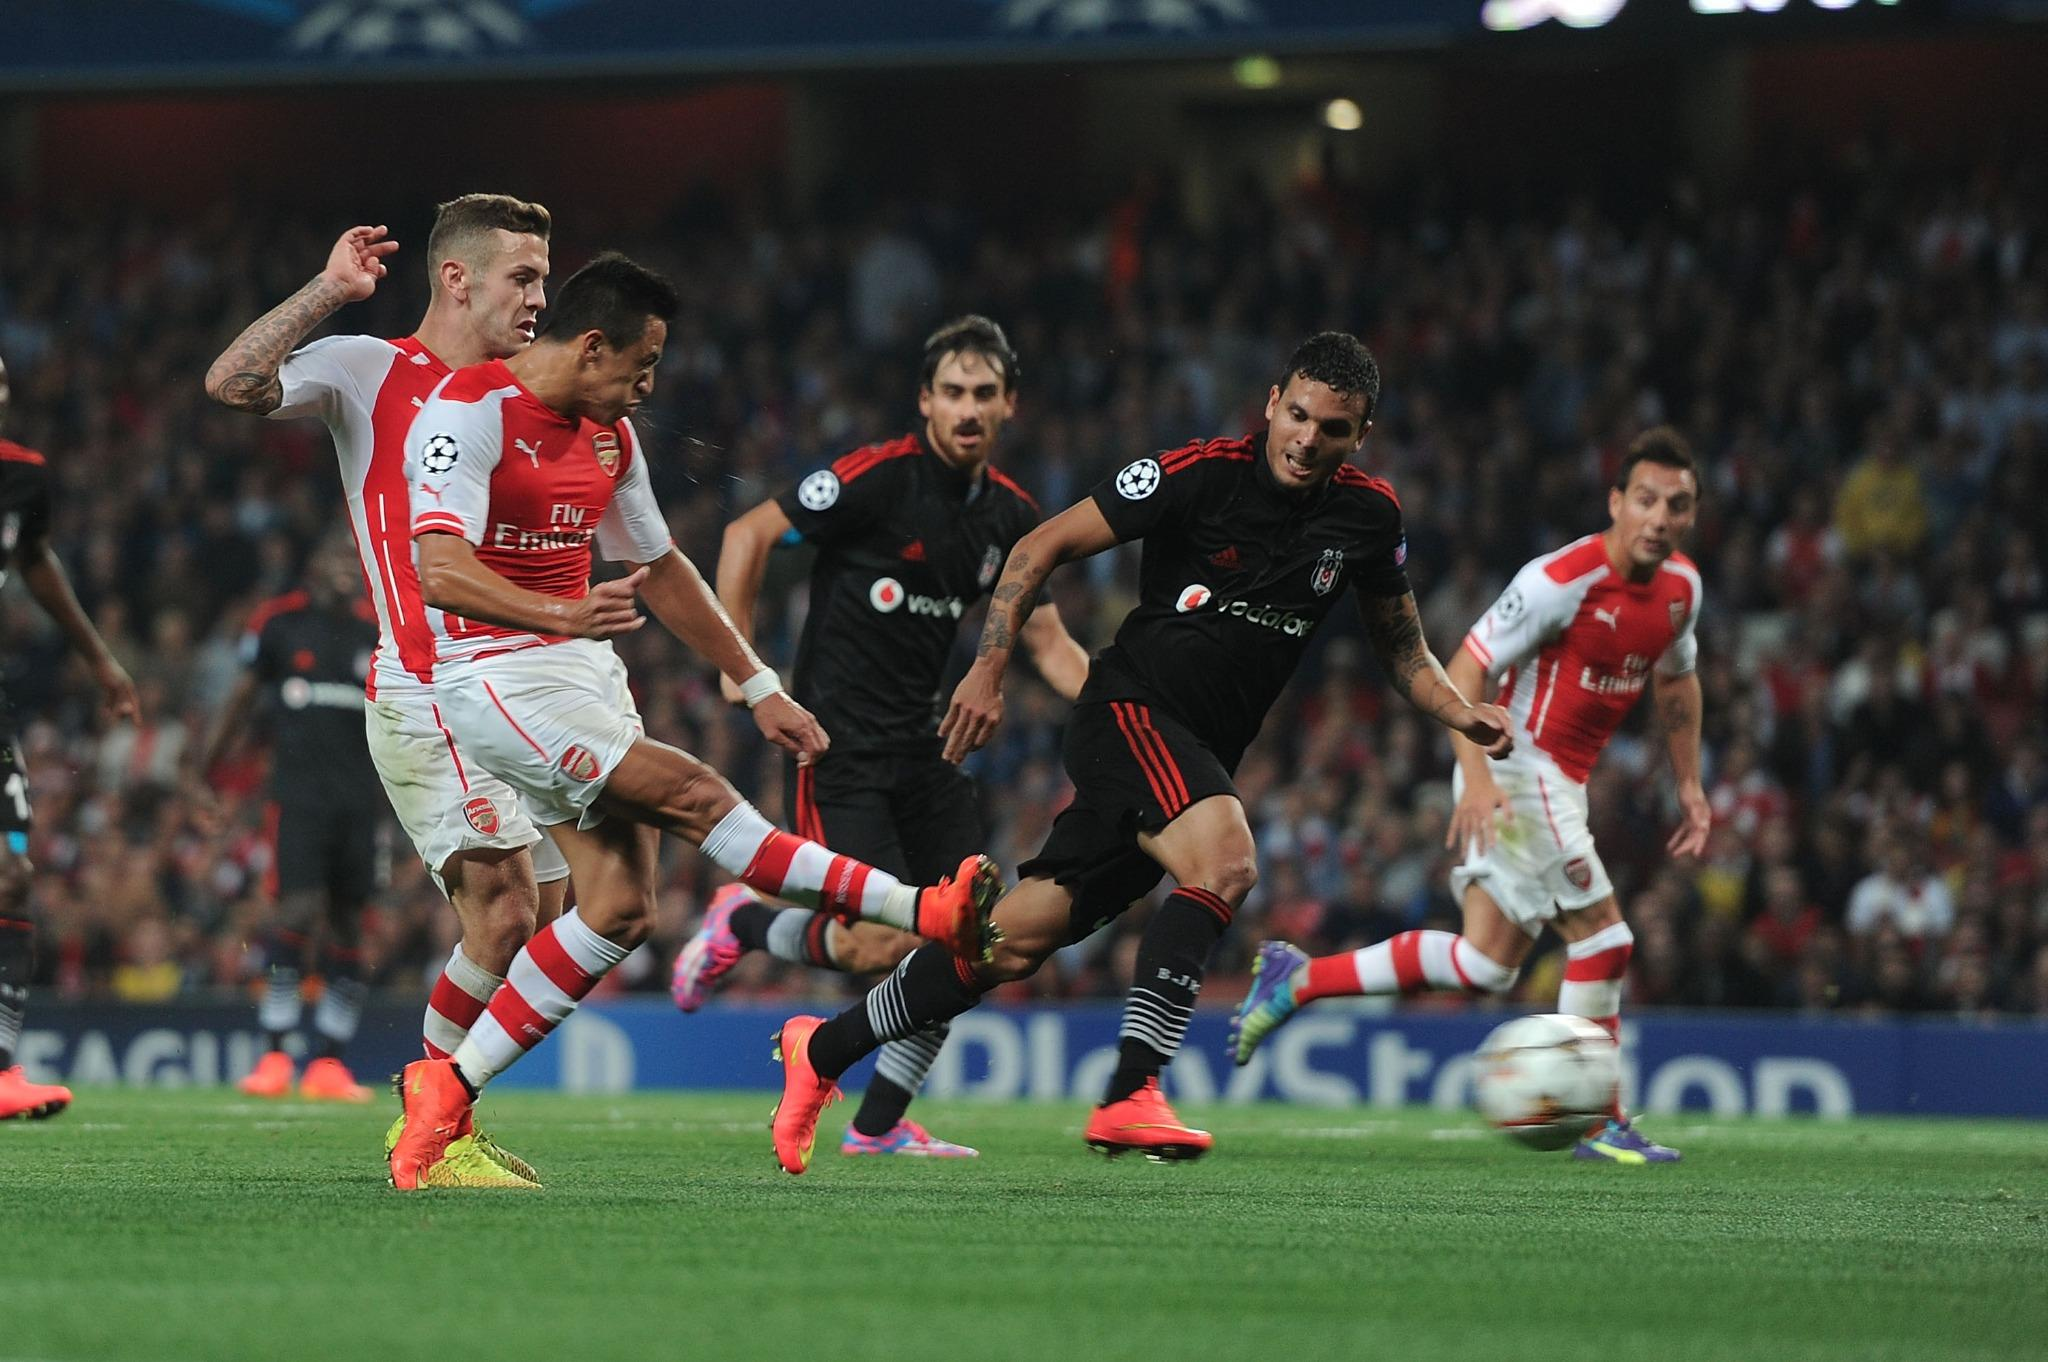 RT @Arsenal: The moment we've all been waiting for... @Alexis_Sanchez's first goal for @Arsenal http://t.co/oK2q5veOjk